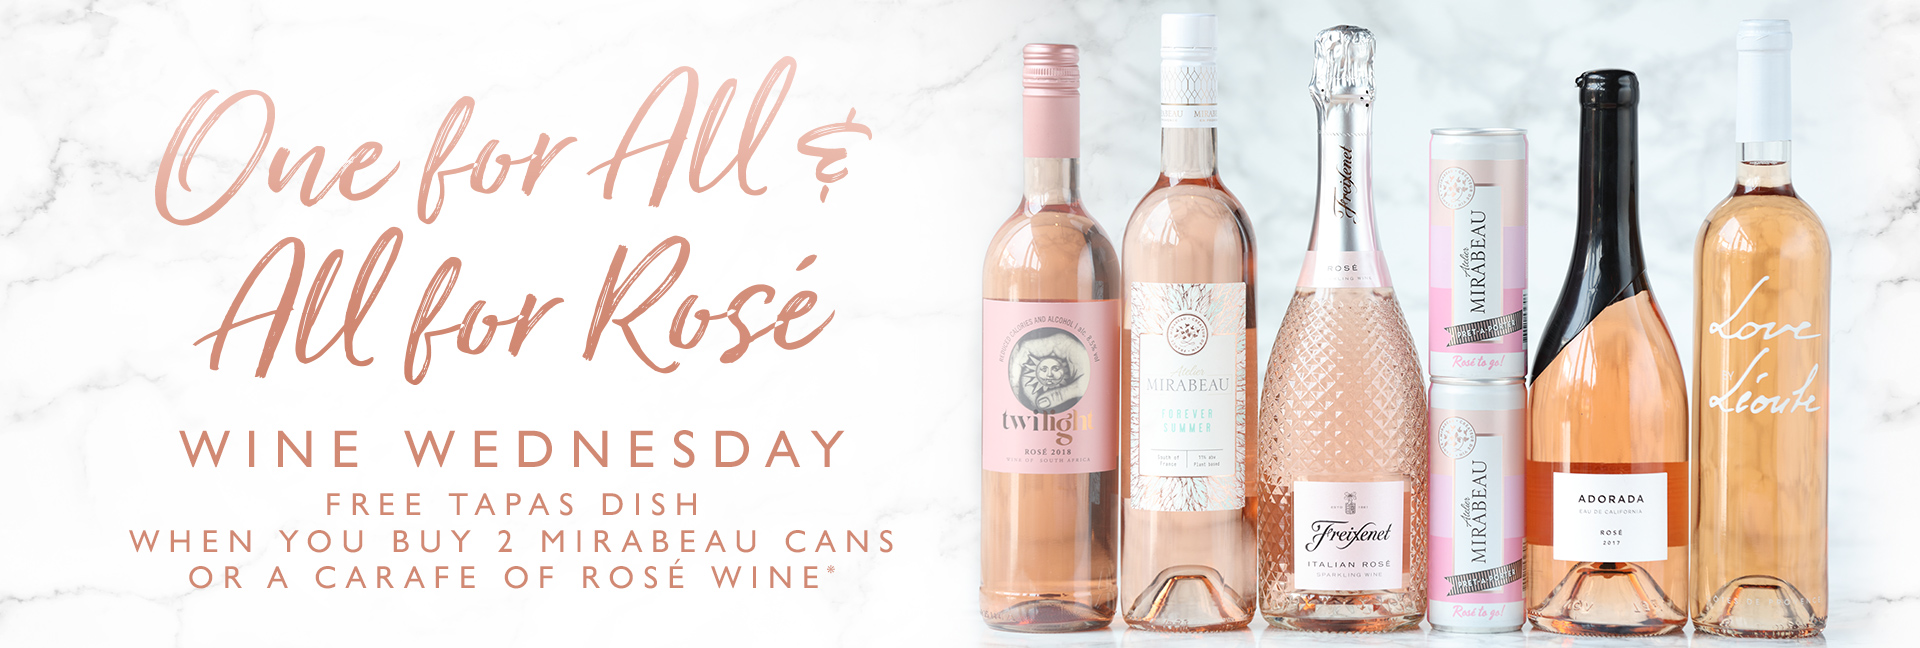 Wine Wednesday at All Bar One Norwich